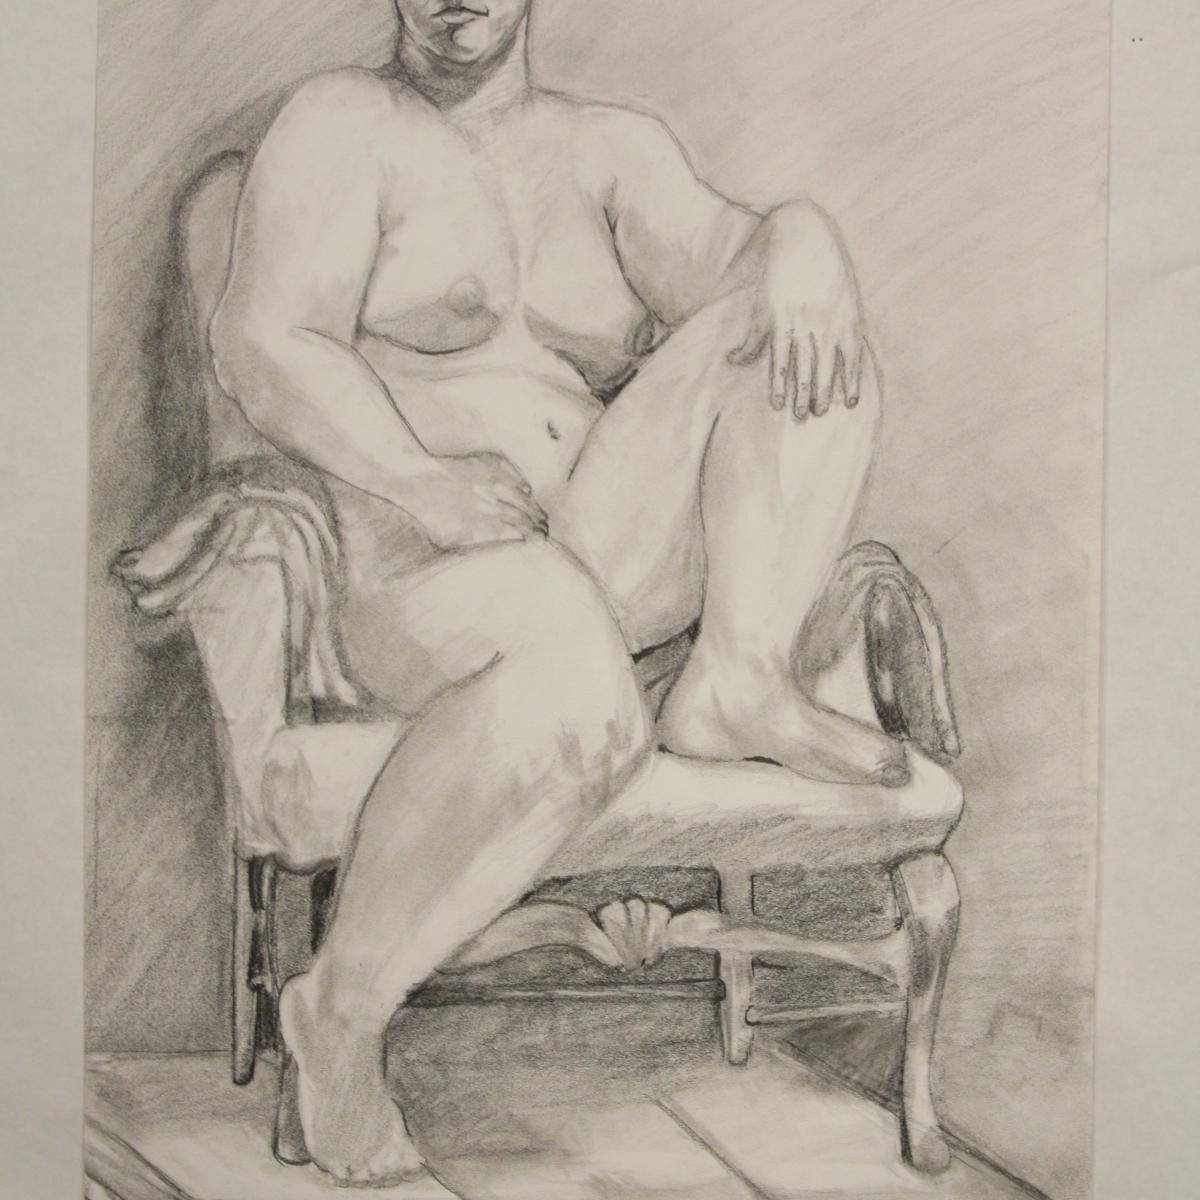 Drawing of a nude on a chair.